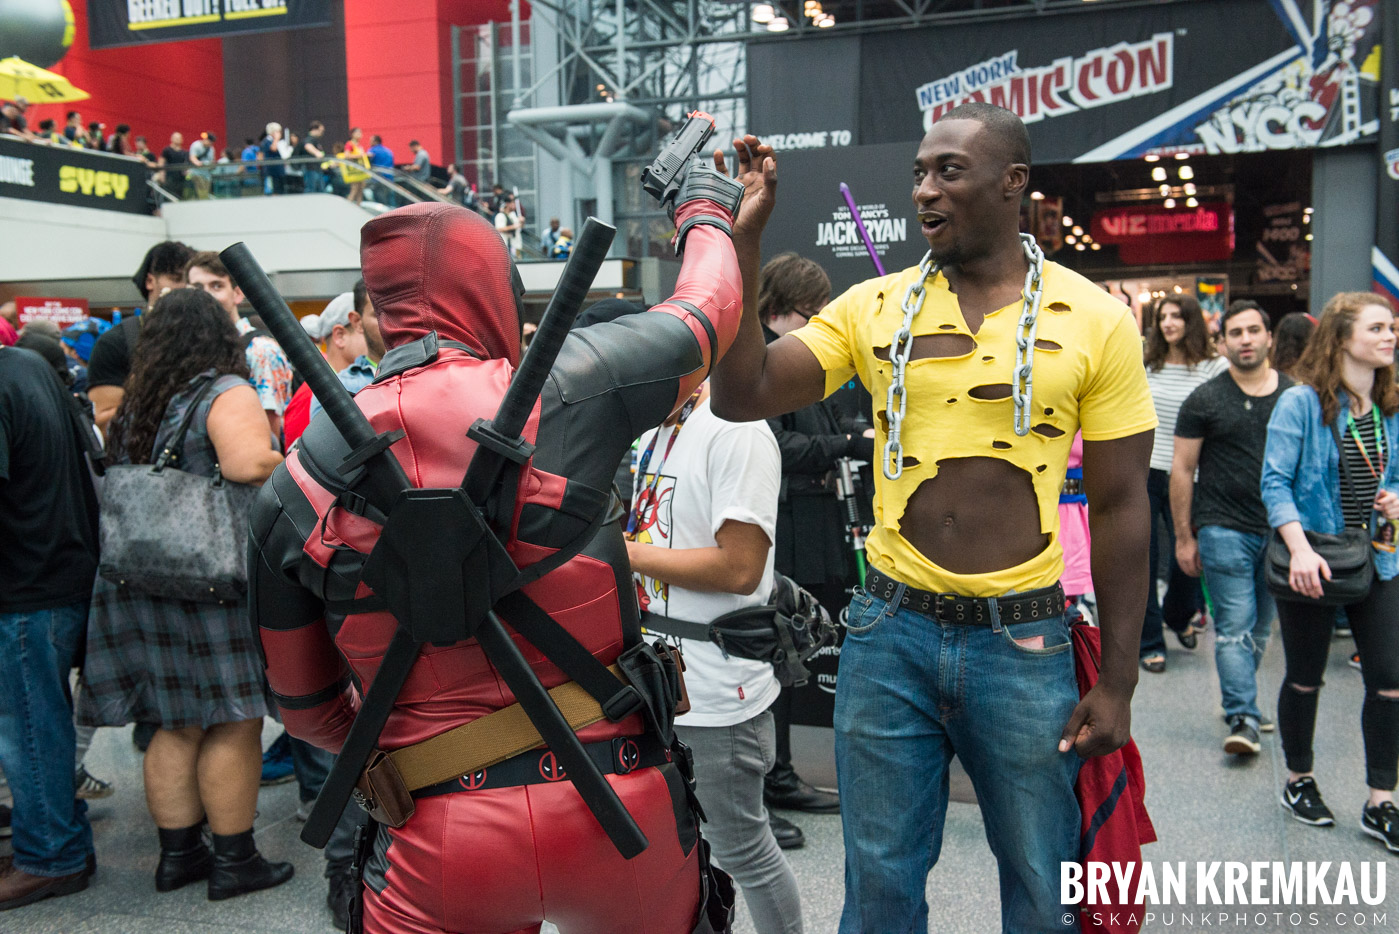 New York Comic Con 2017: Sunday – 10.8.17 (5)